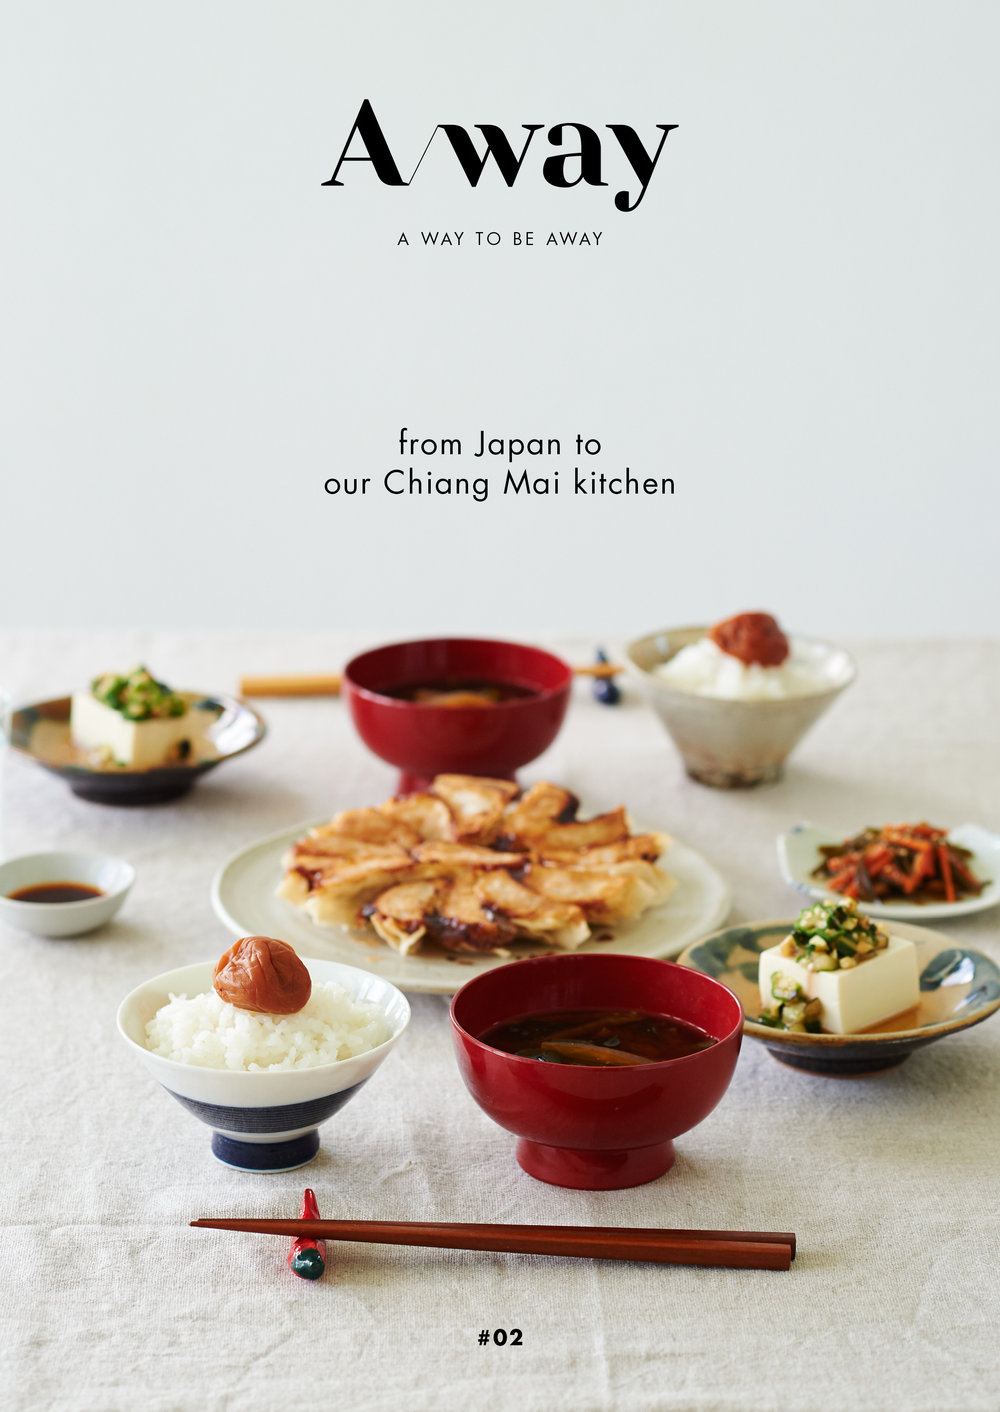 Free download here - art direction, editorial design, food styling,& recipe writing